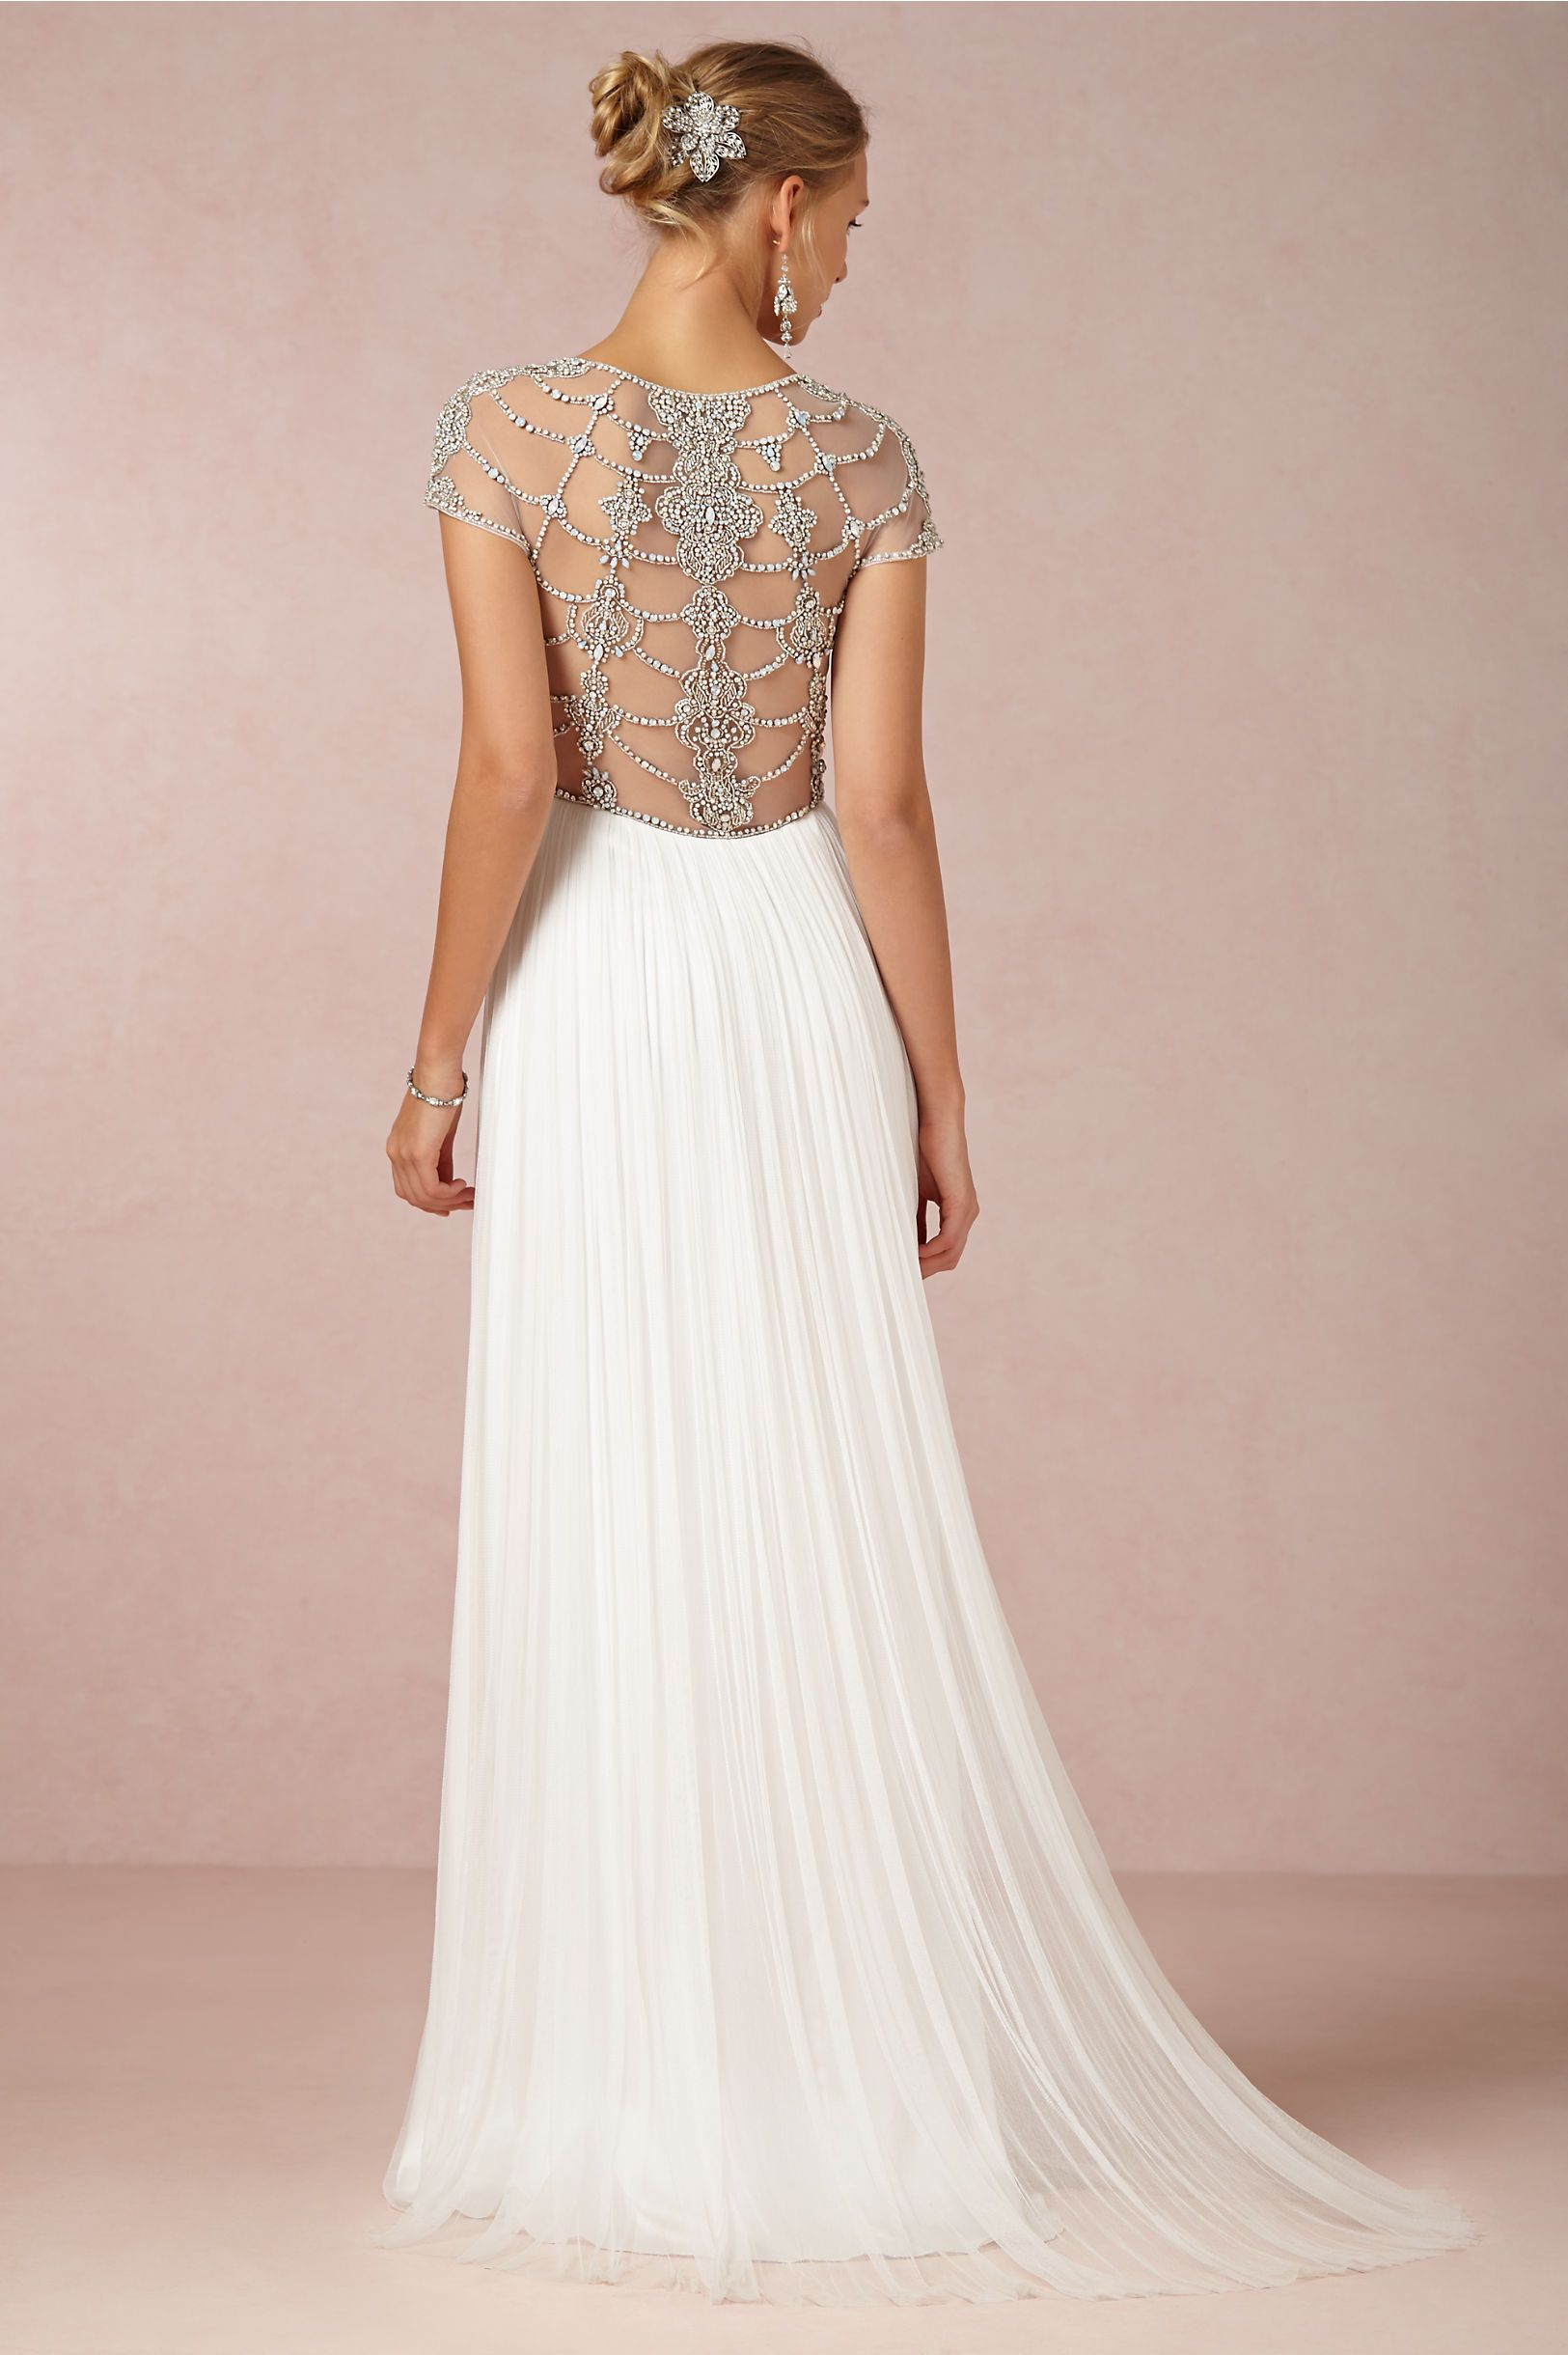 Tallulah gown from bhldn wedding dress ideas pinterest gowns